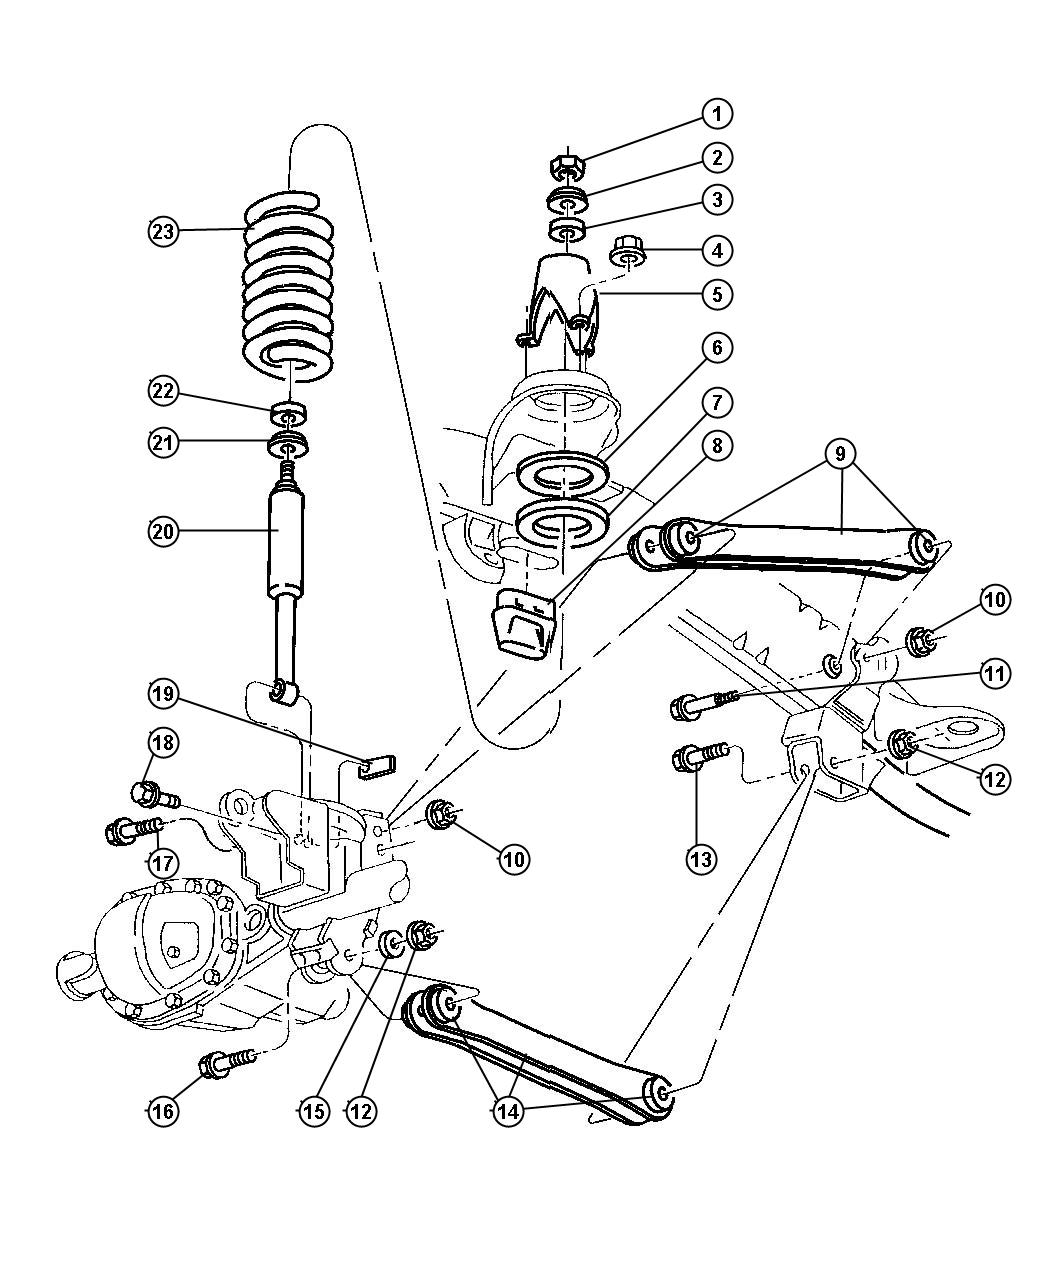 Service manual [2007 Dodge Caliber Head Bolt Removal